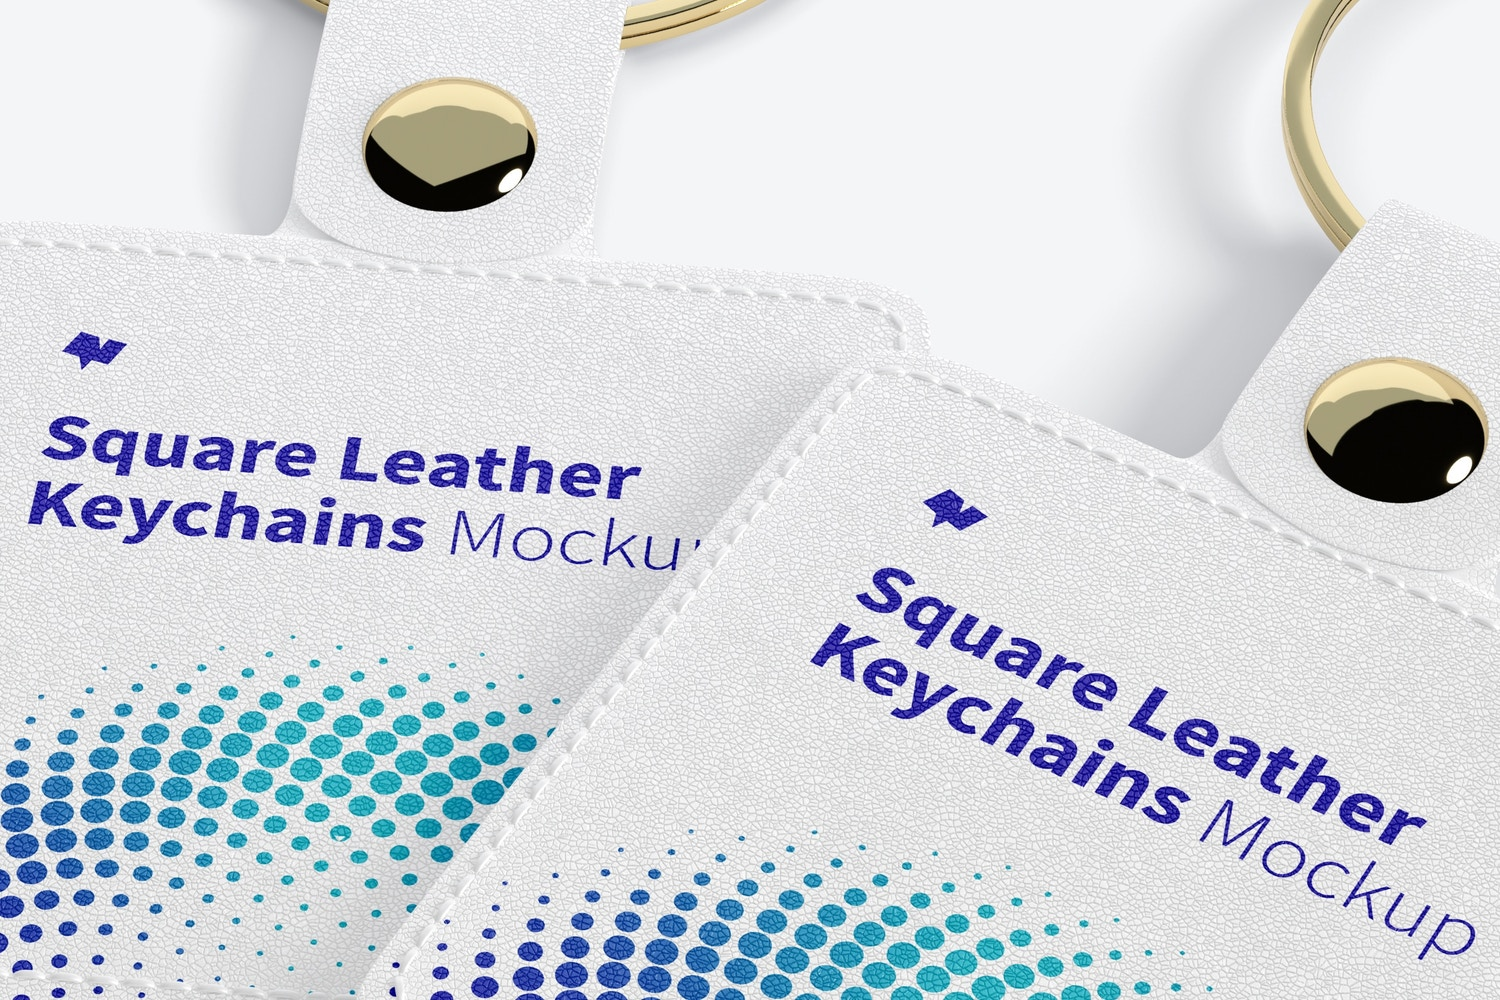 Square Leather Keychains Mockup, Perspective